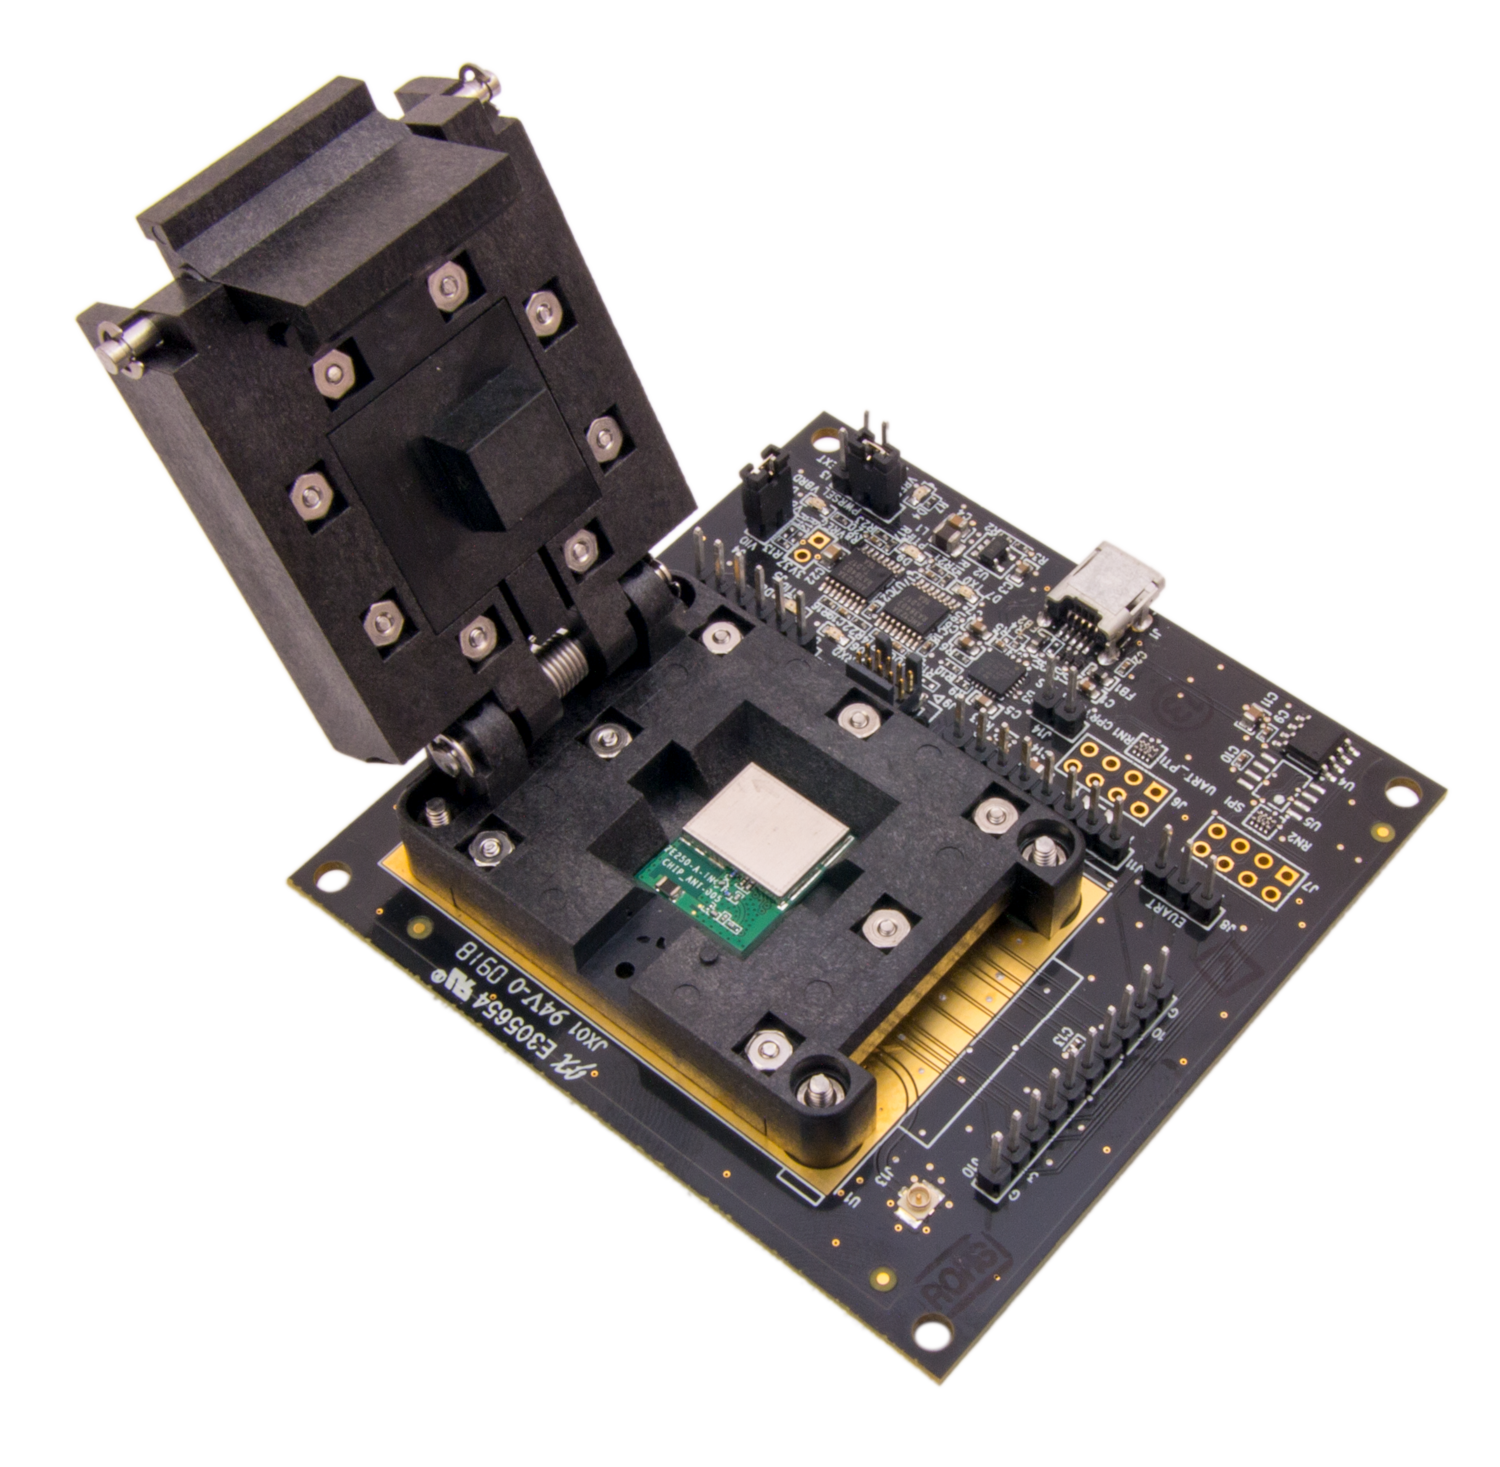 Hardware Mmb Networks Free Software For Designing Electronic Circuits Irisconsultinggrp Cycloid Socket Dev Board Ortho Openmodule